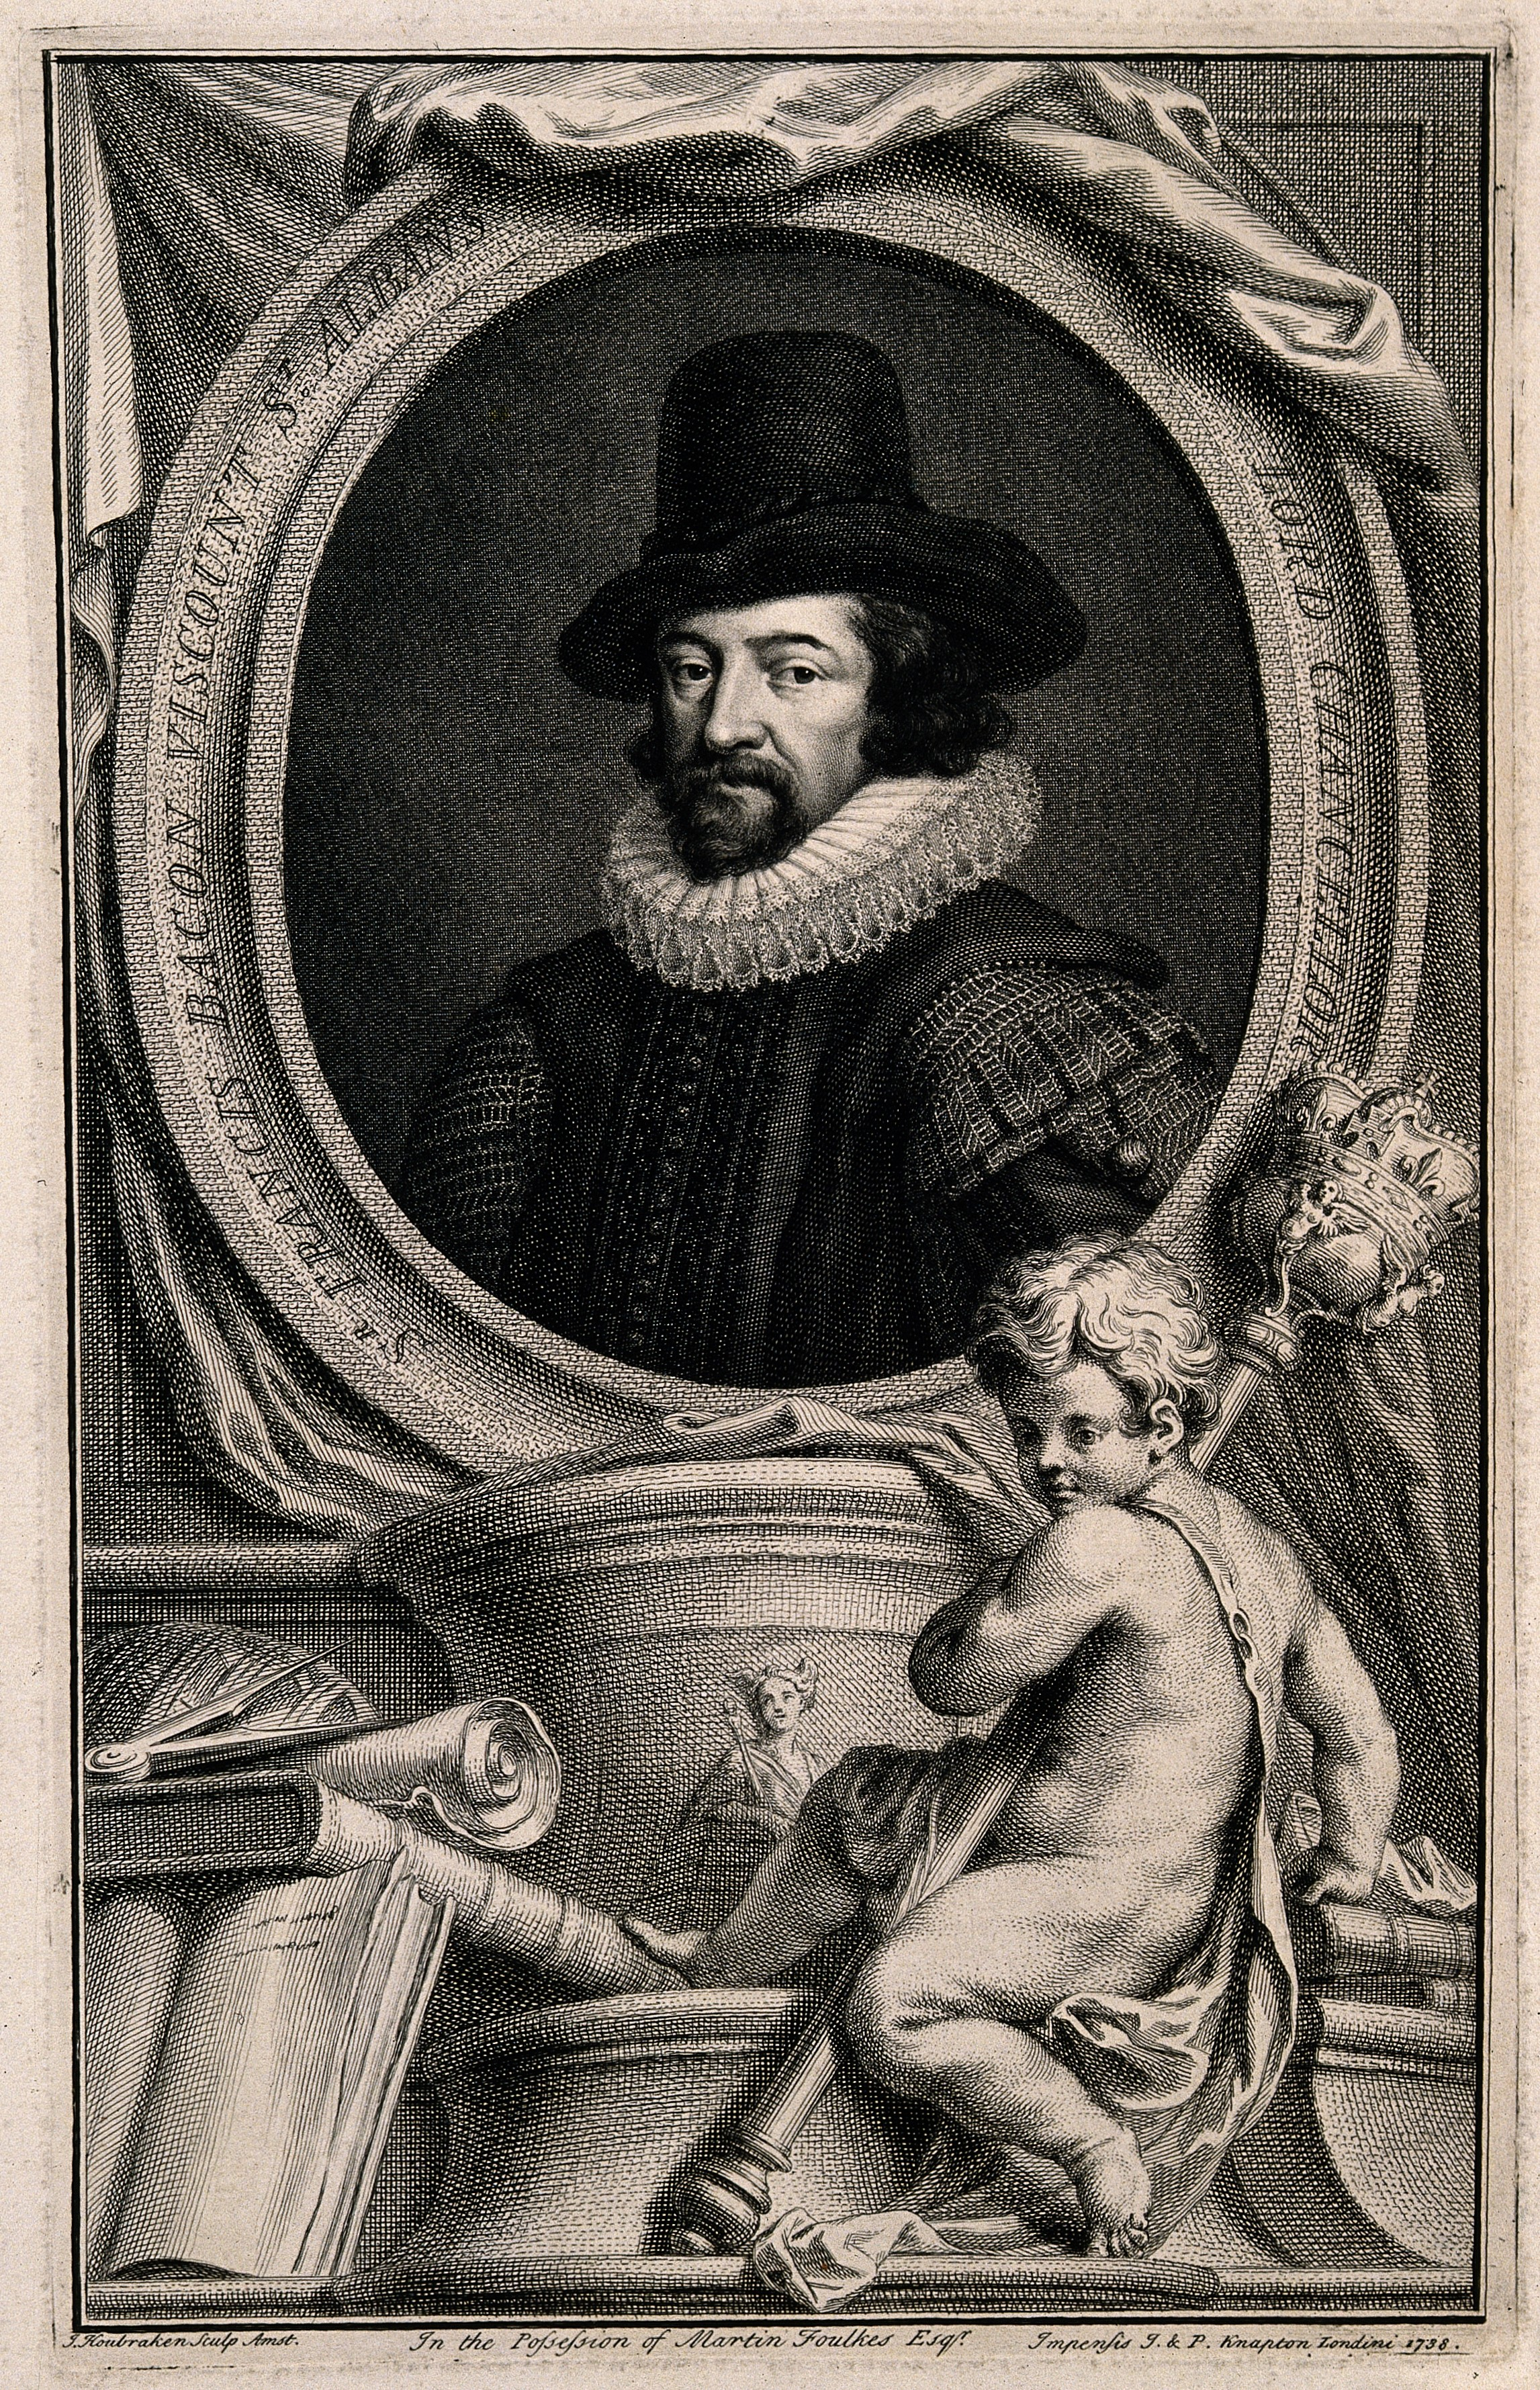 Francis_Bacon,_Viscount_St_Albans._Line_engraving_by_J._Houb_Wellcome_V0000263.jpg